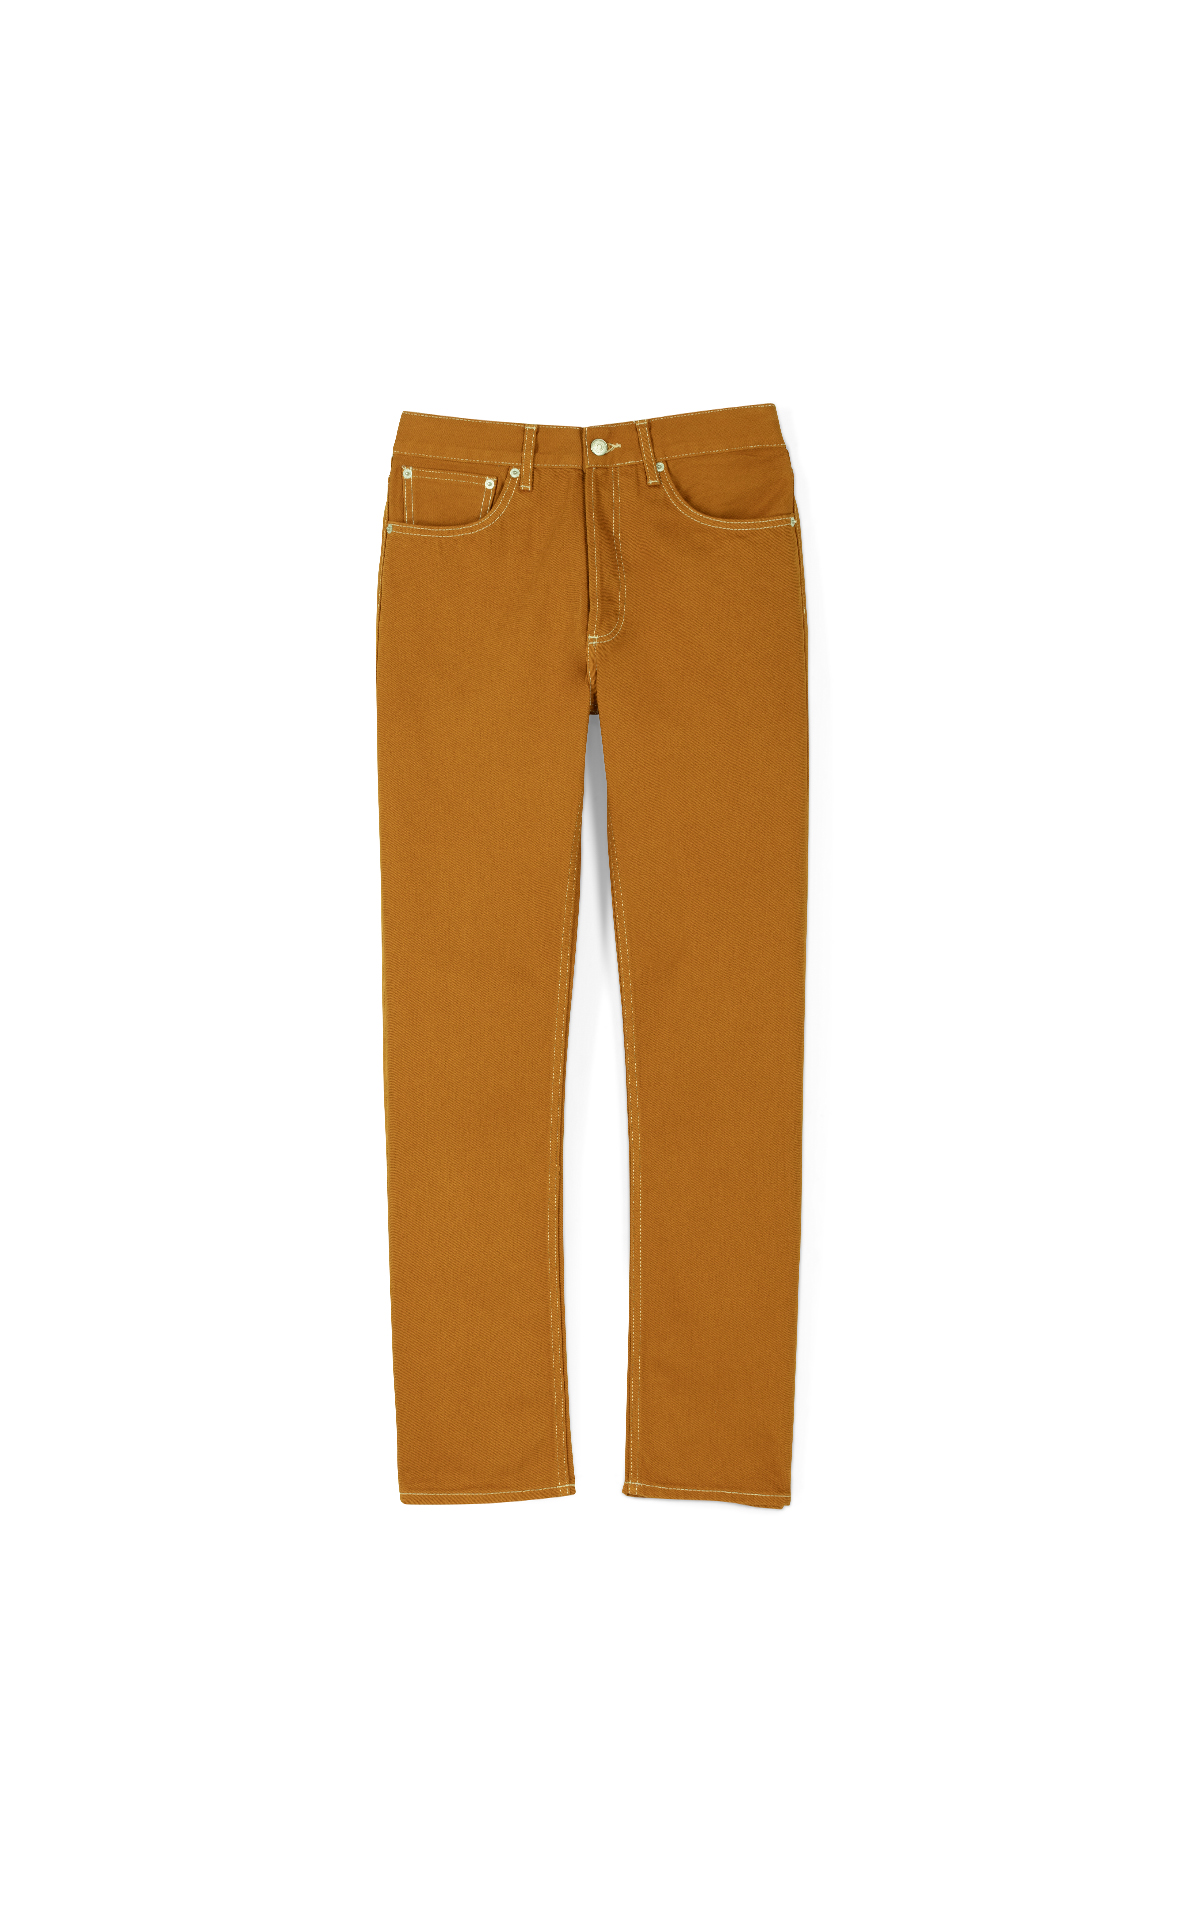 Sandro Men's ochre pants*